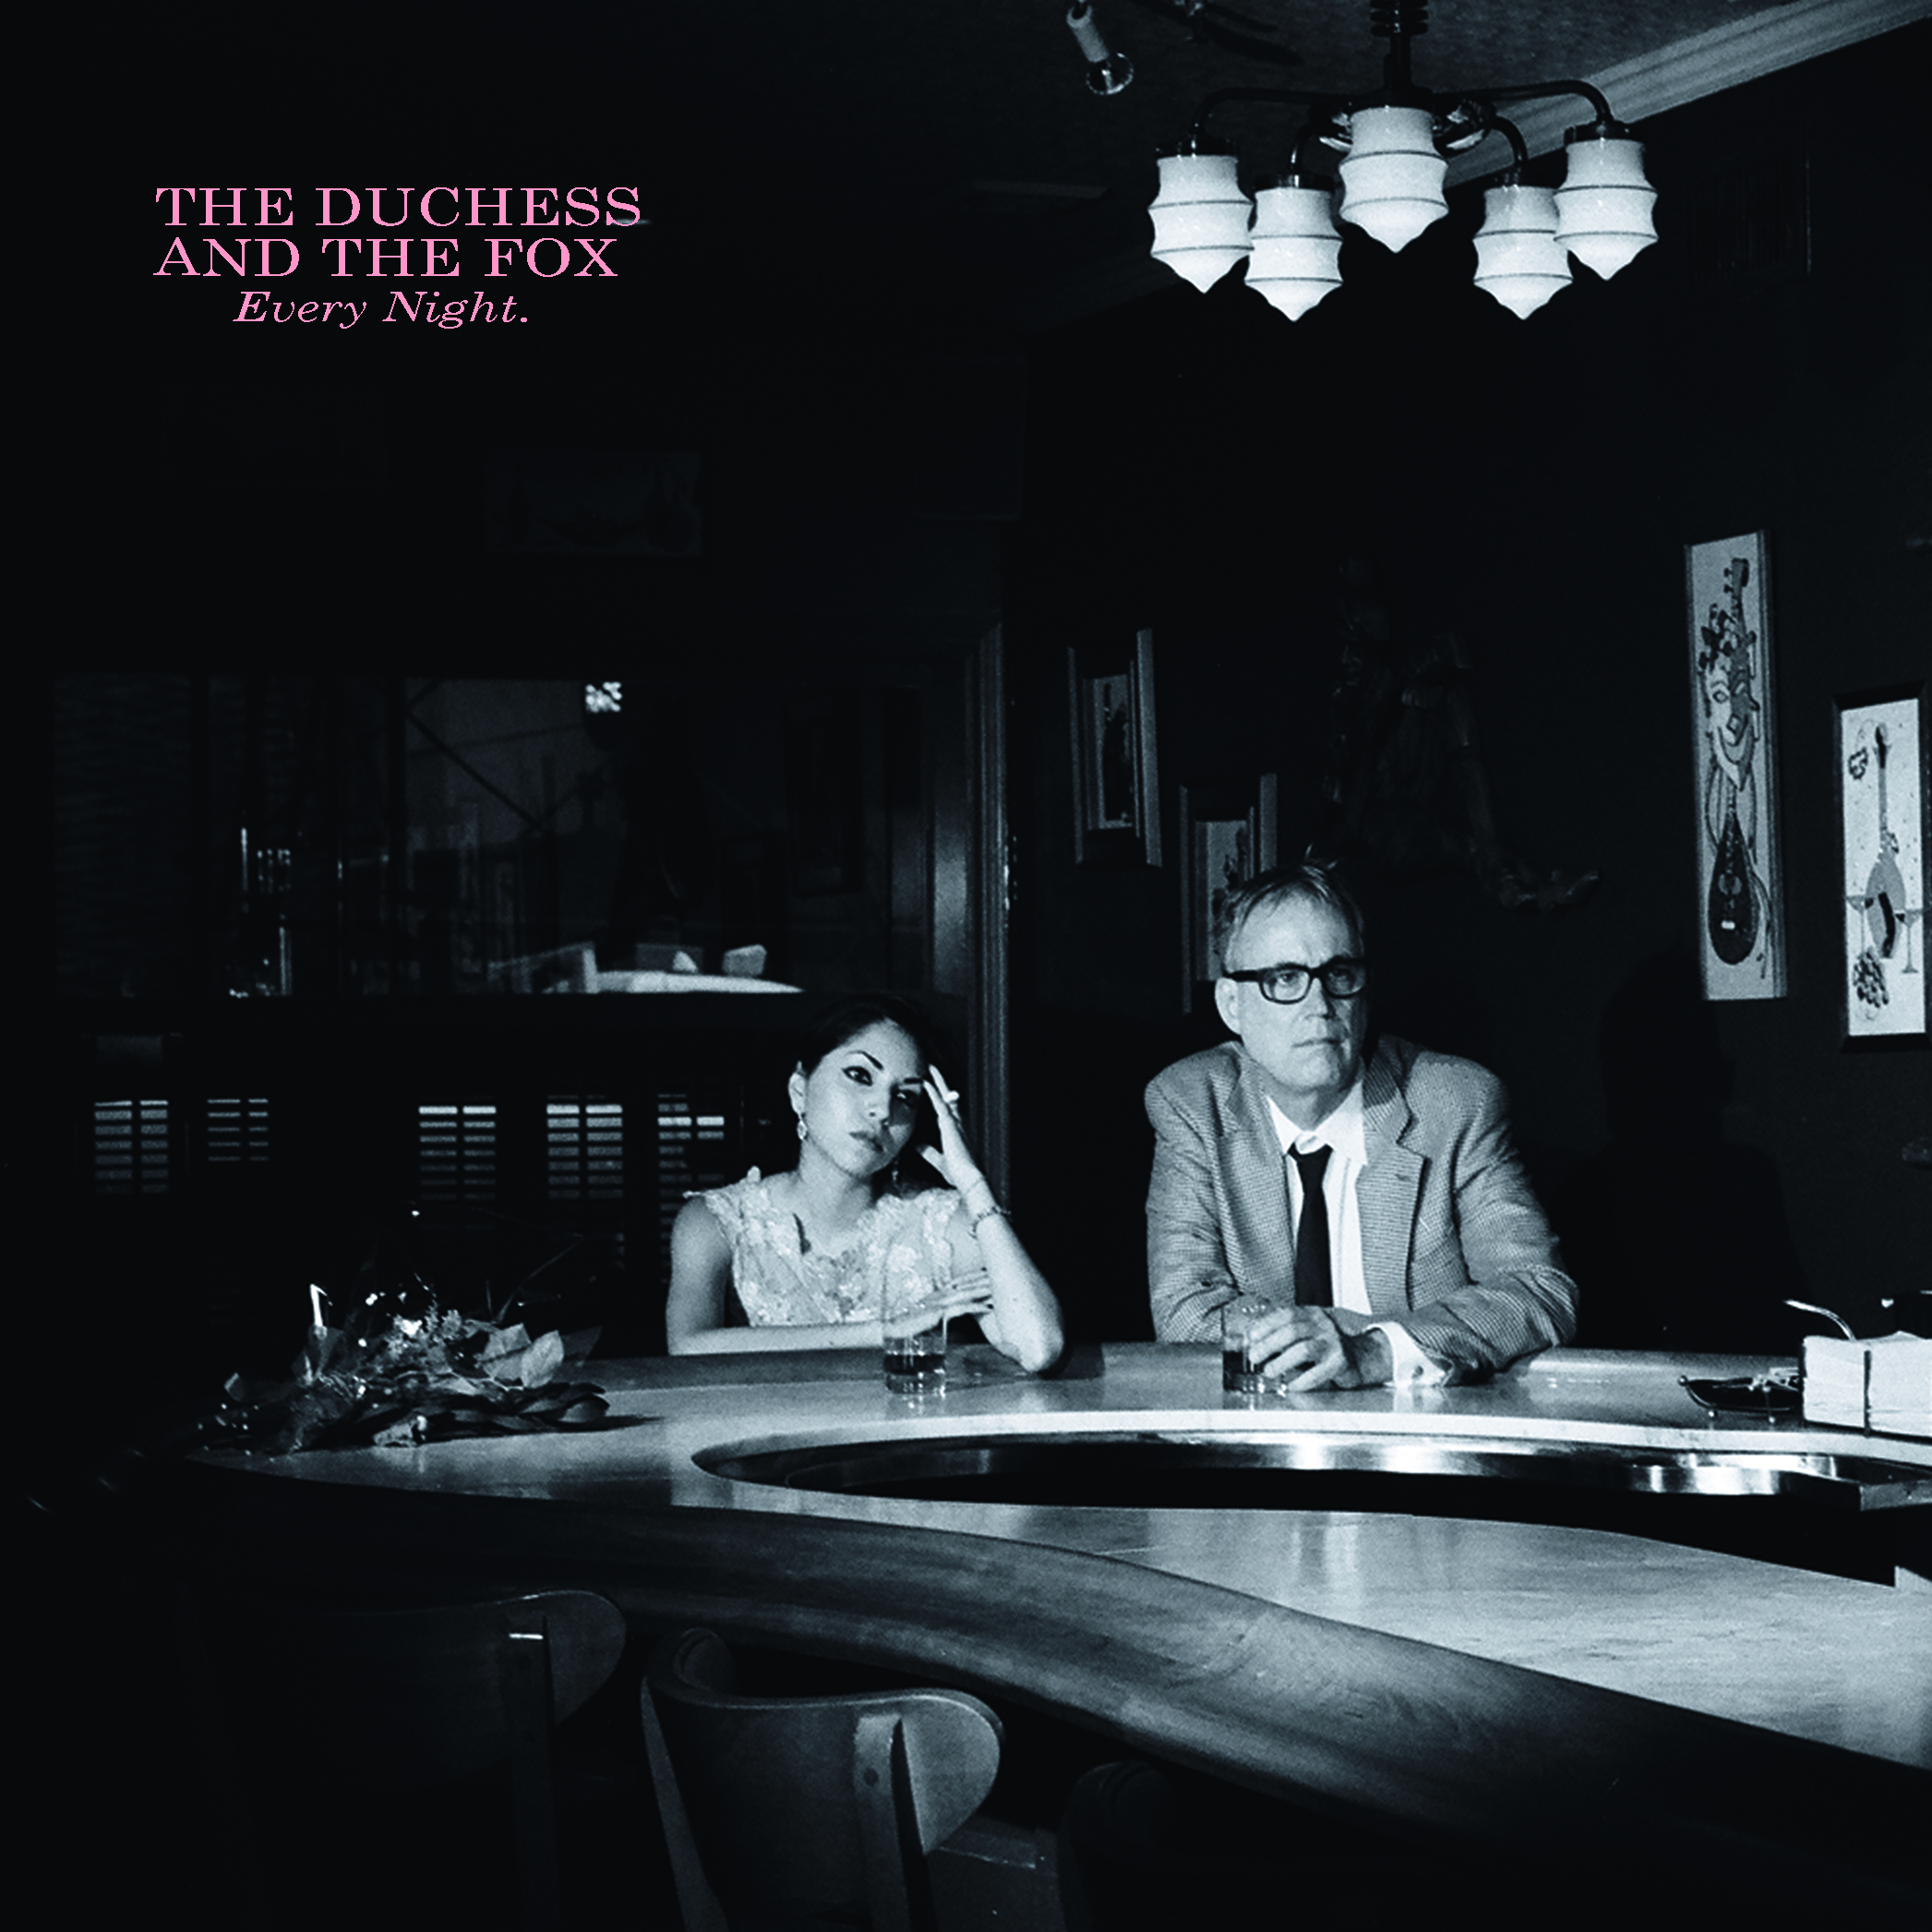 The Duchess and The Fox - Every Night